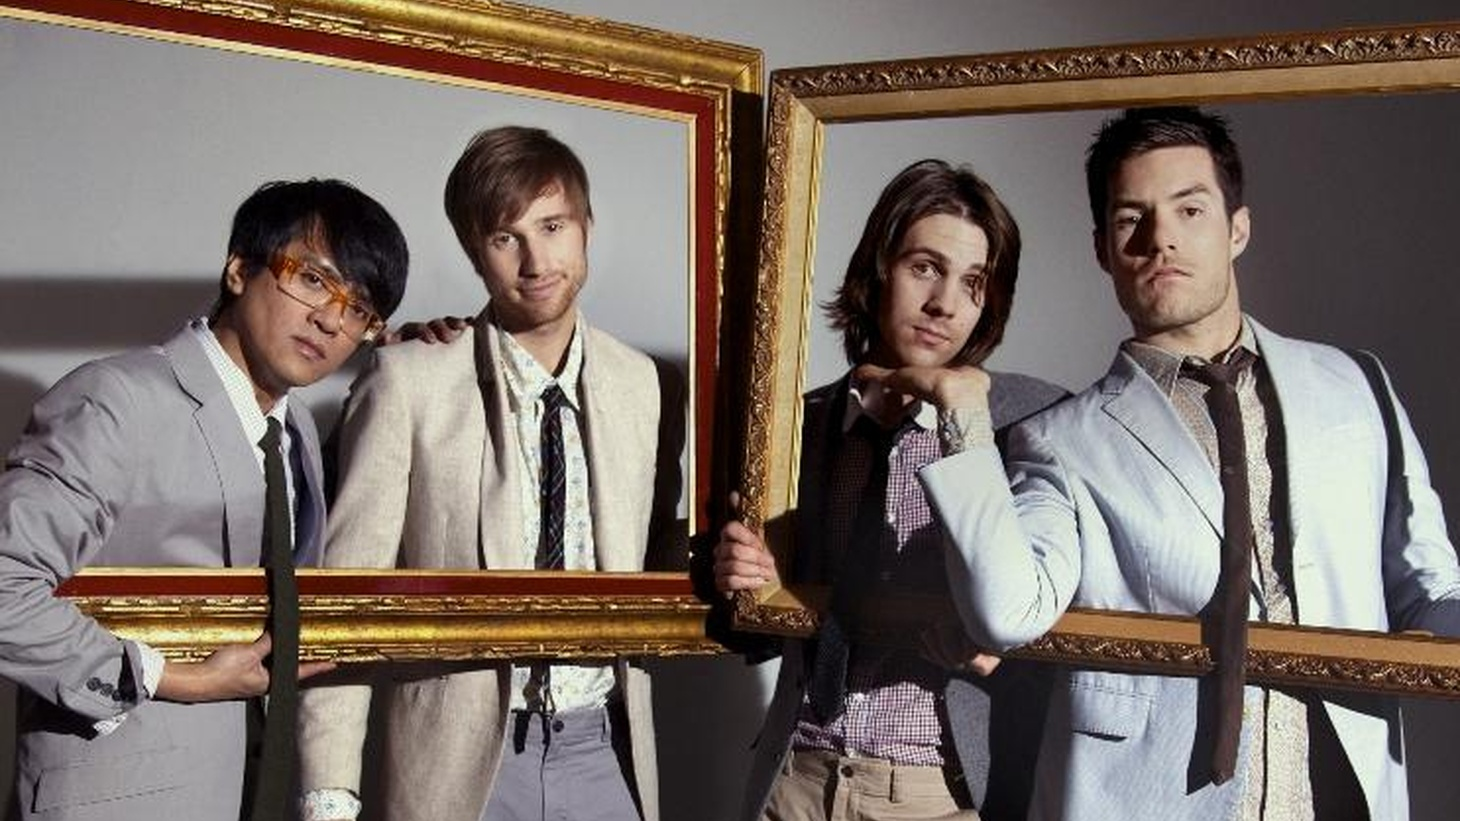 Not only are L.A.'s Saint Motel talented indie-pop stars in the making, but they are also gifted cinematographers who started making music together in film school. They'll bring their impressive live show to Morning Becomes Eclectic at 11:15am.